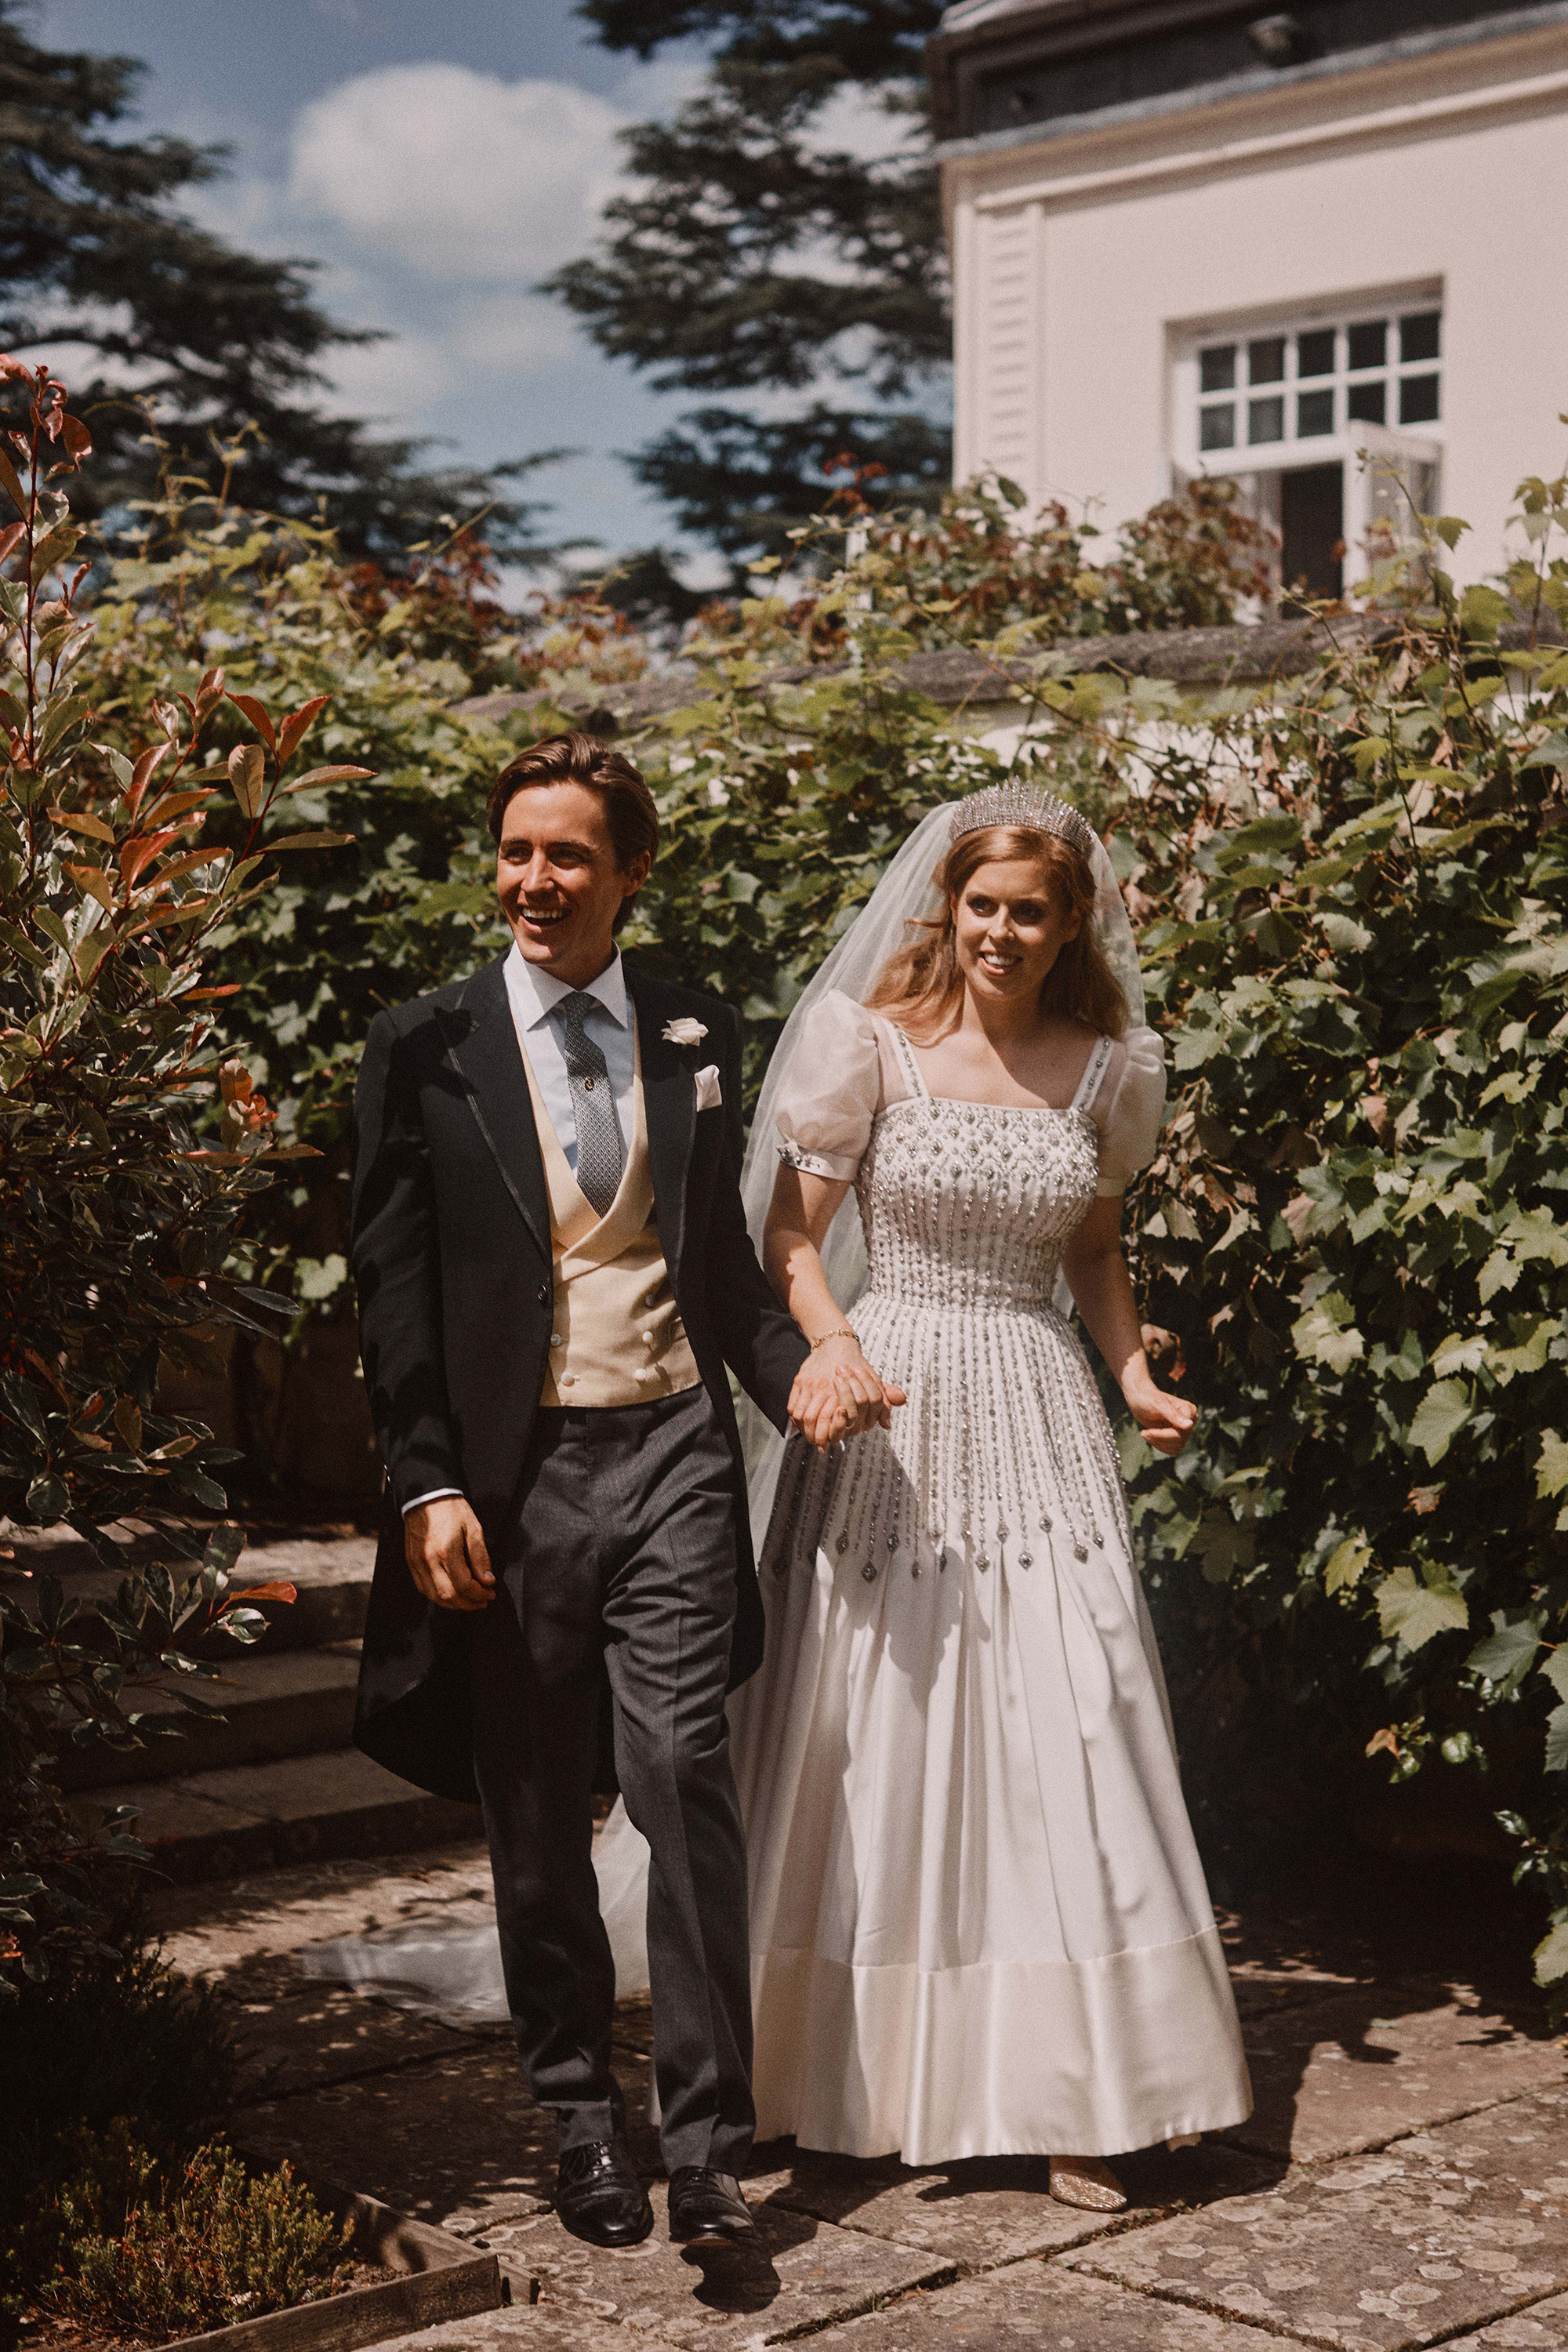 Official wedding photograph of Princess Beatrice and Edoardo Mapelli Mozzi after their wedding at The Royal Chapel of All Saints at Royal Lodge, Windsor, Berkshire, UK, on the 17th July 2020. Picture by Benjamin Wheeler/WPA-Pool NEWS EDITORIAL USE ONLY. NO COMMERCIAL USE. NO MERCHANDISING, ADVERTISING, SOUVENIRS, MEMORABILIA or COLOURABLY SIMILAR. NOT FOR USE AFTER 18th January 2021 WITHOUT PRIOR PERMISSION FROM BUCKINGHAM PALACE. NO CROPPING. The photograph must not be digitally enhanced, manipulated or modified in any manner or form and must include all of the individuals in the photograph when published. 17 Jul 2020 Pictured: Edoardo Mapelli Mozzi, Princess Beatrice. Photo credit: MEGA TheMegaAgency.com +1 888 505 6342 (Mega Agency TagID: MEGA689540_002.jpg) [Photo via Mega Agency]